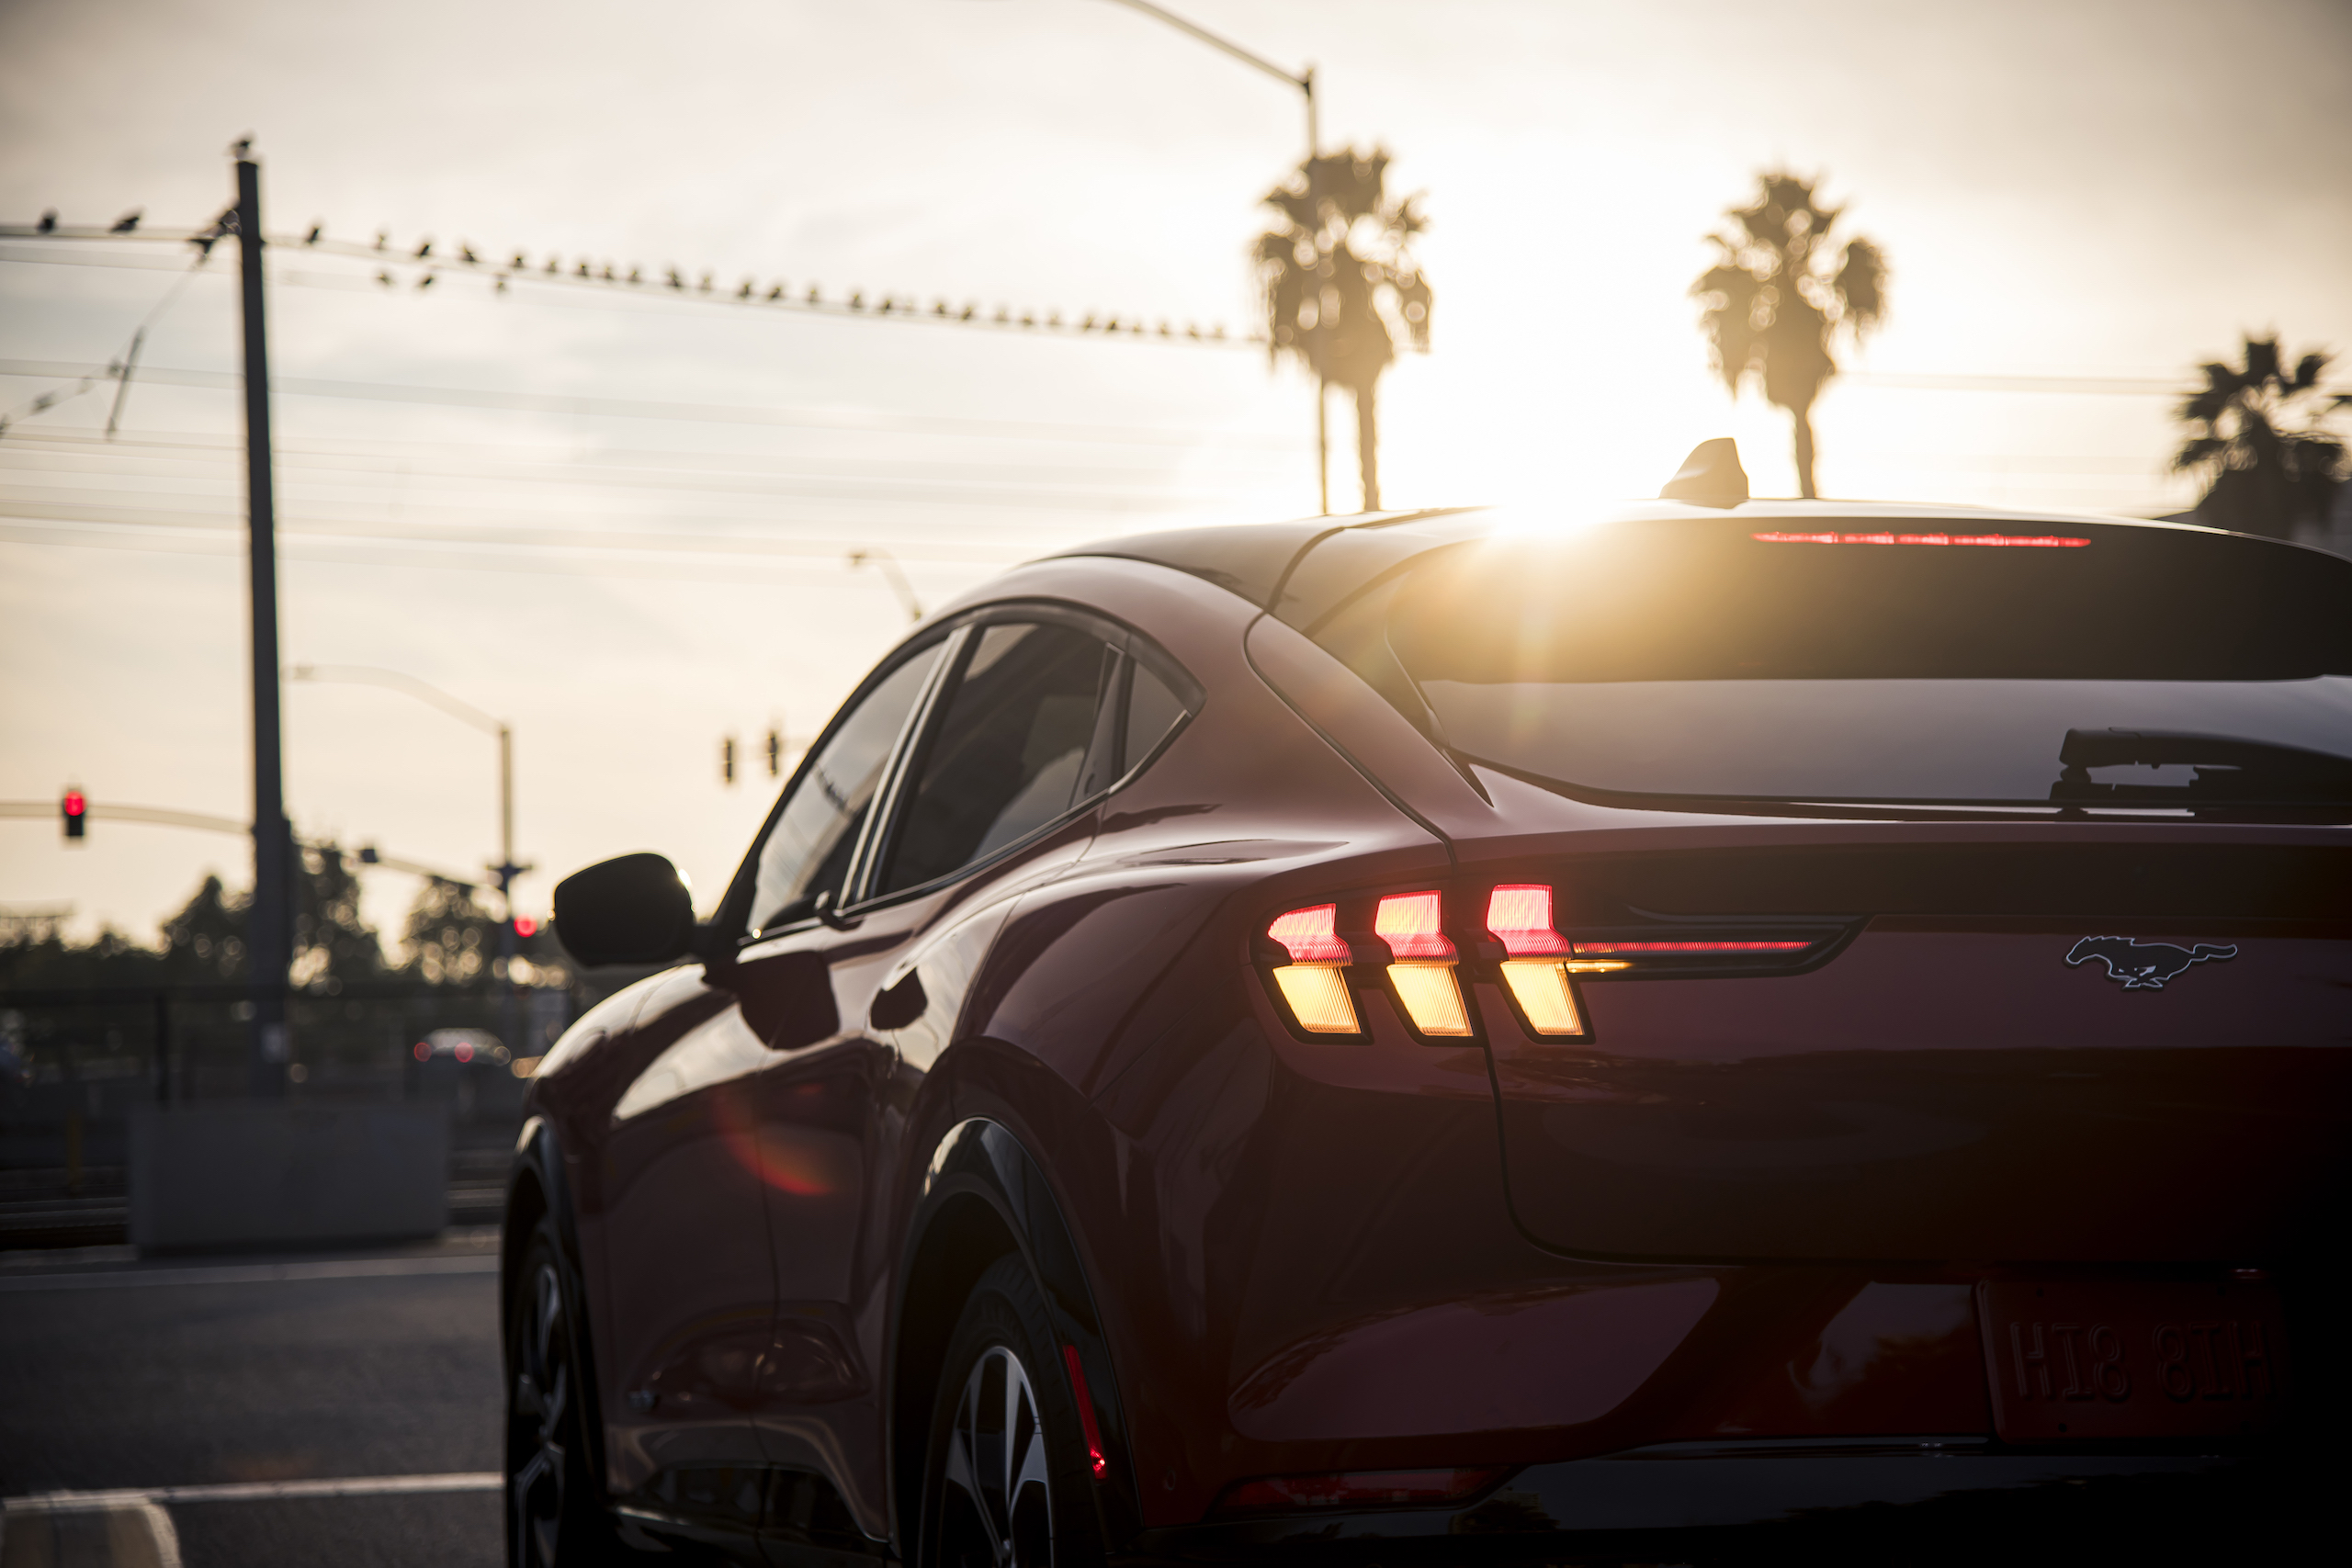 Mustang Mach-E rear three-quarter close at sunset